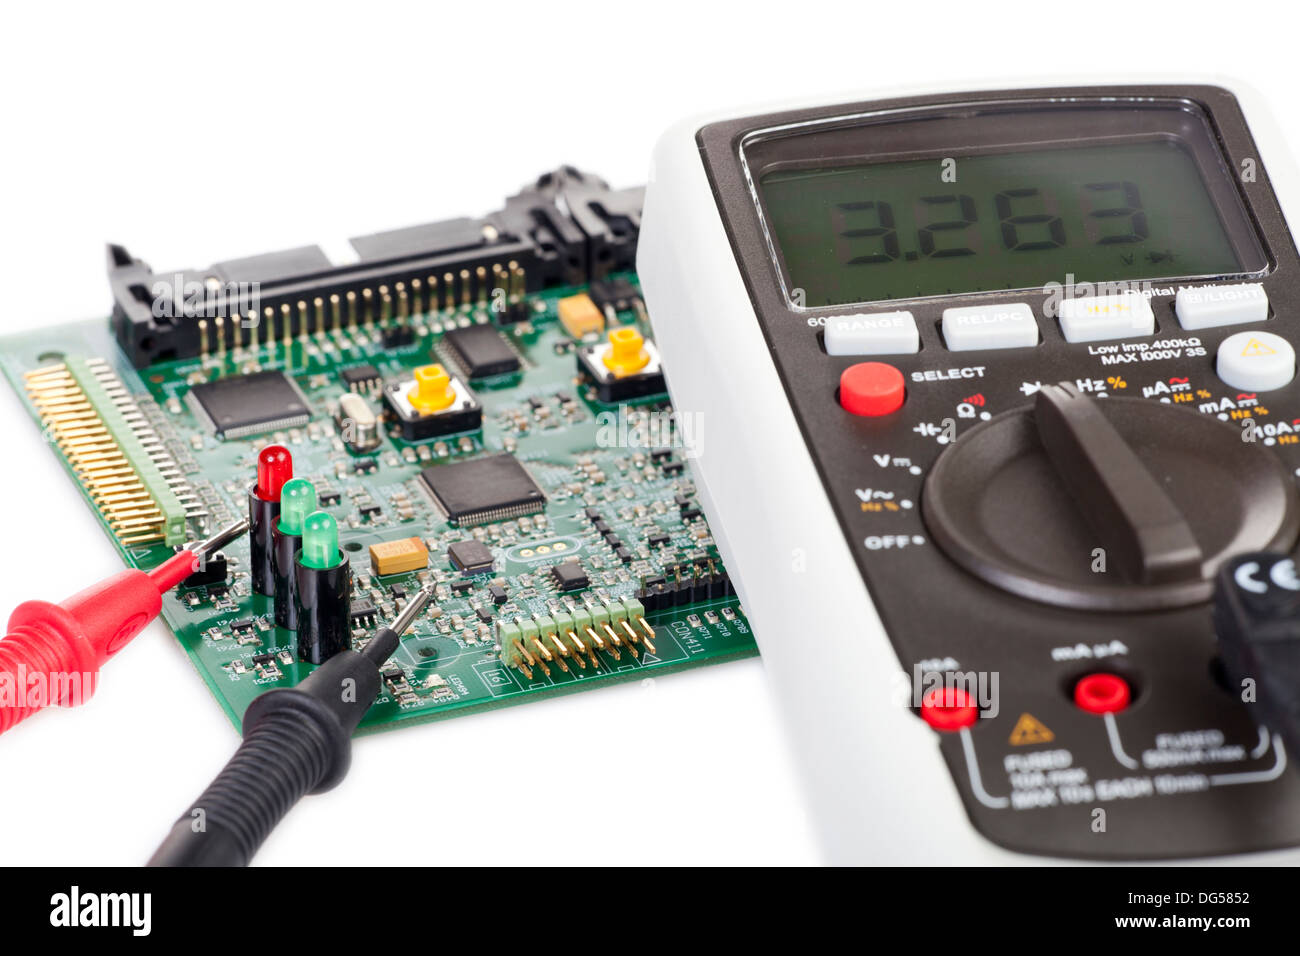 Digital multimeter and a circuit board isolated on white background - Stock Image